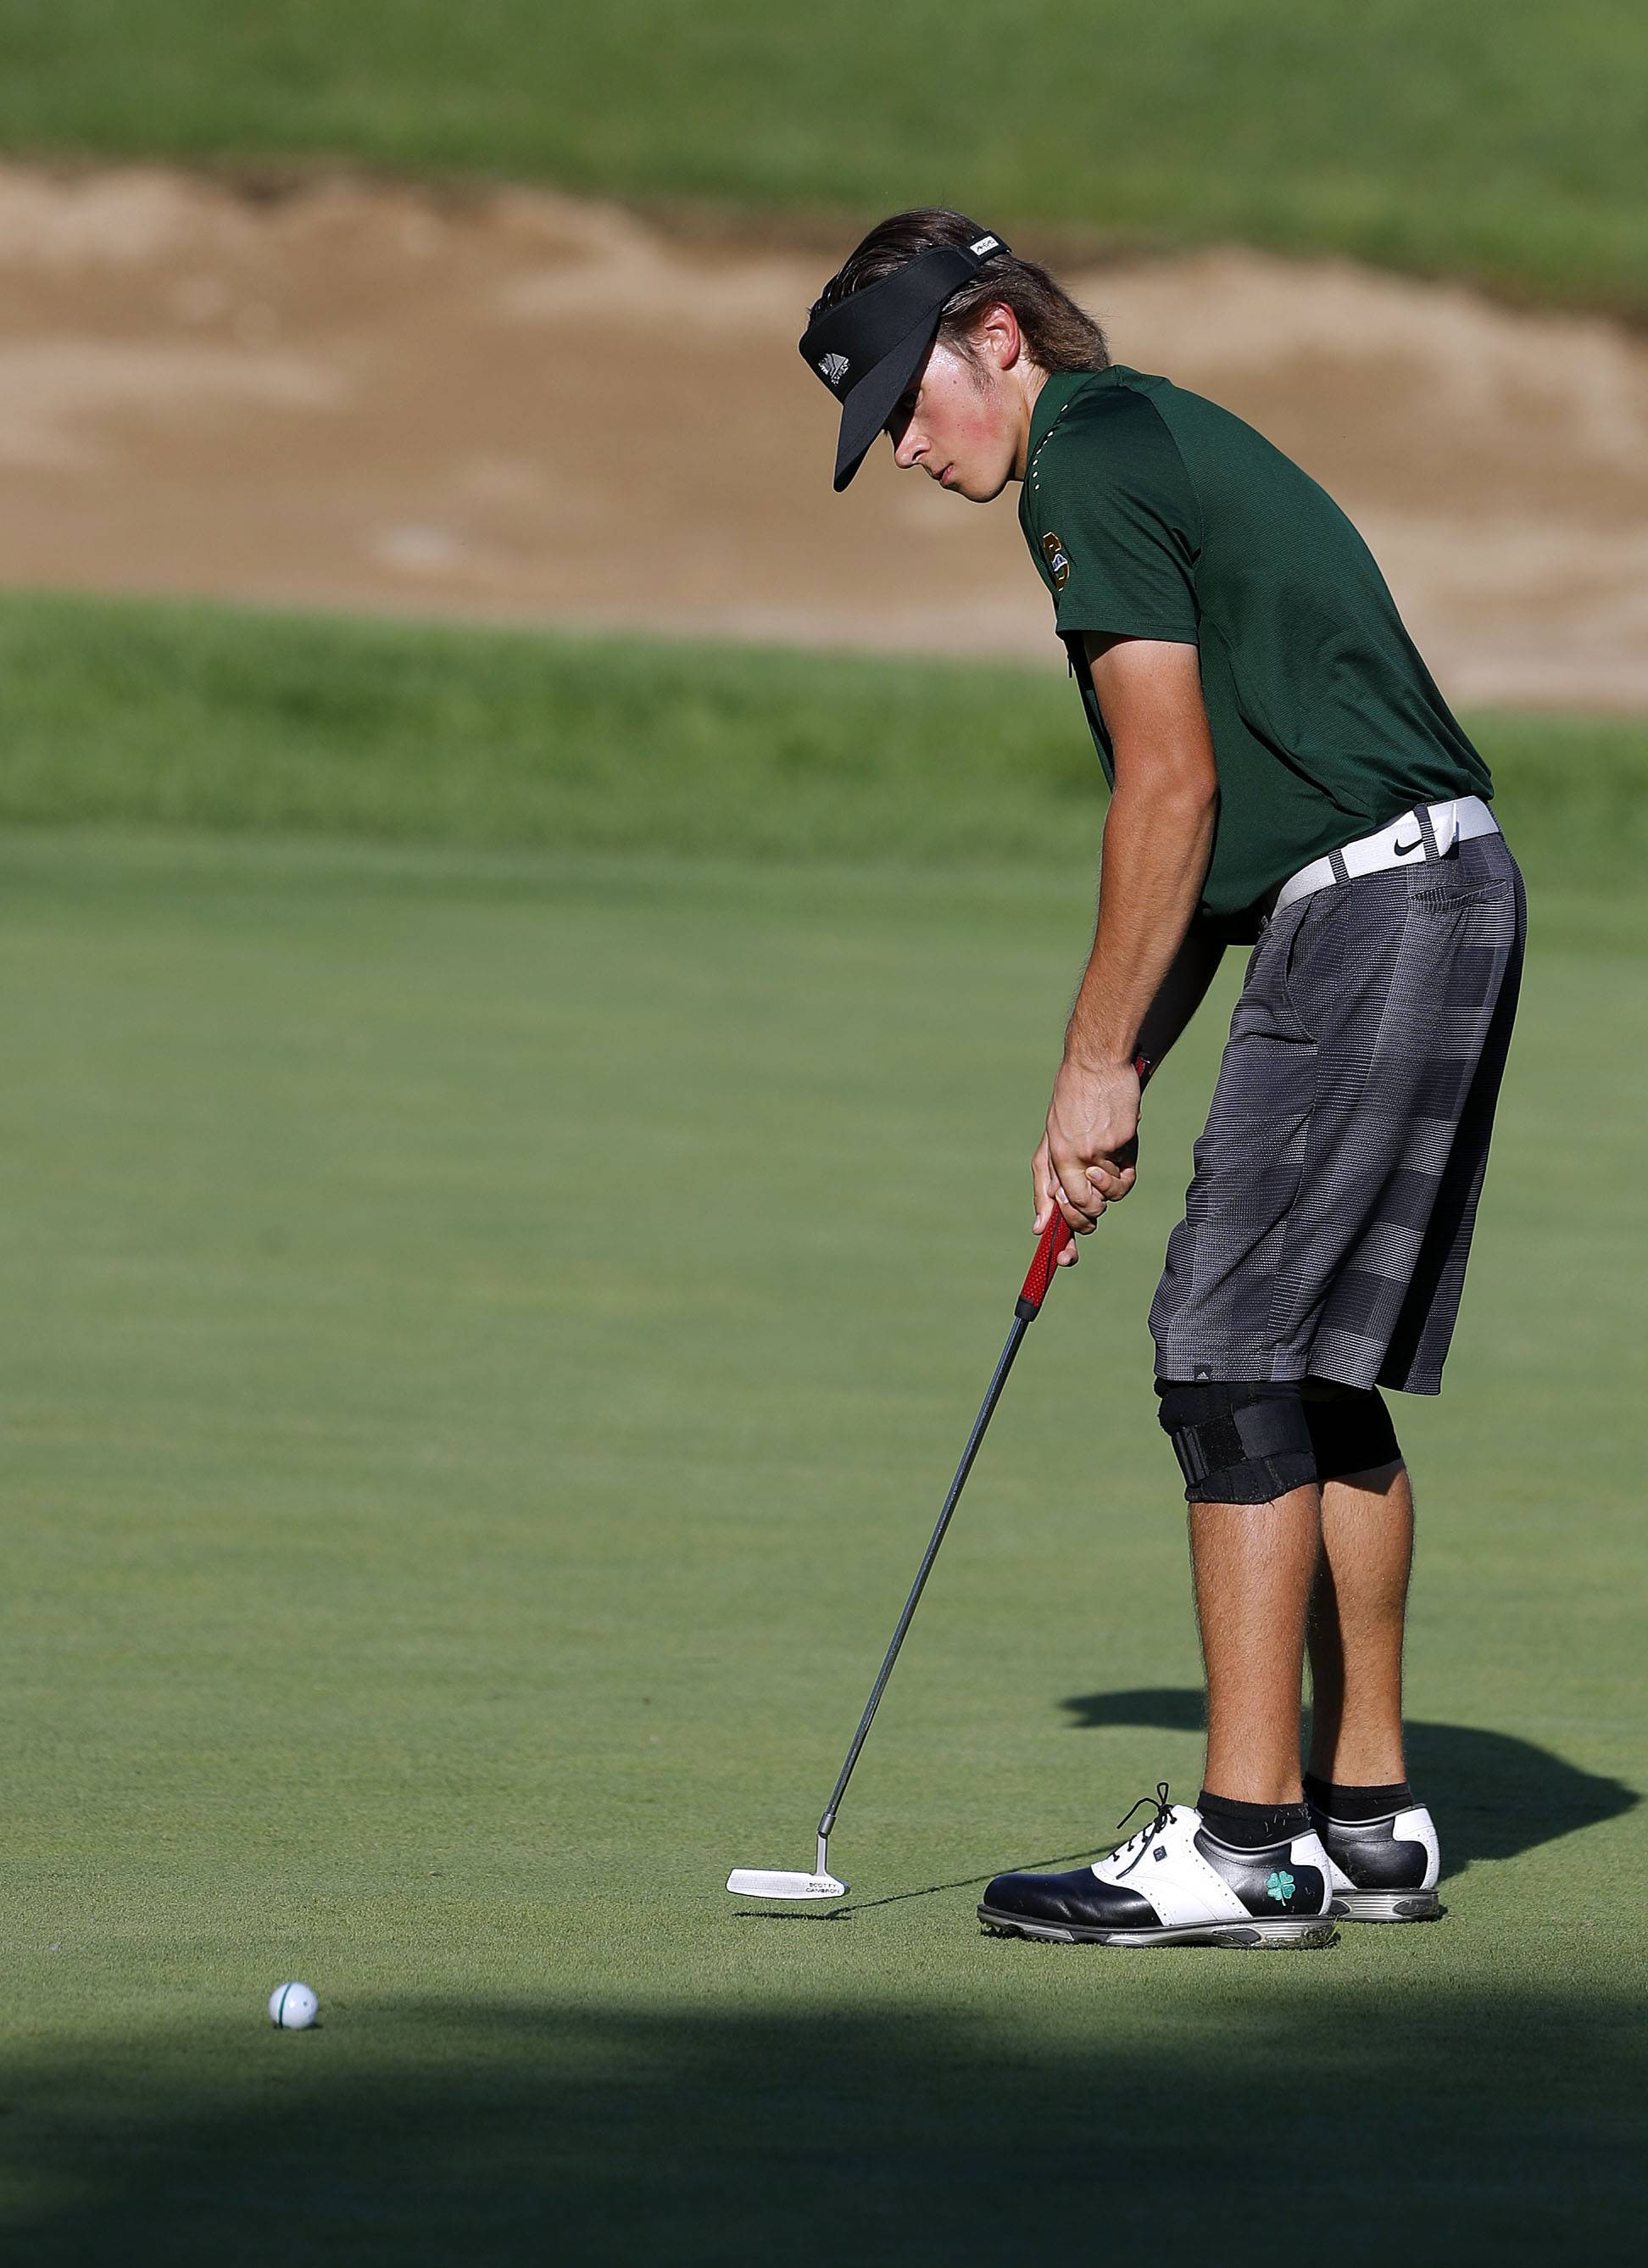 Stevenson's Mark Noonan puts on the 3rd green during their match against Mundelein at Steeple Chase Golf Club Tuesday.